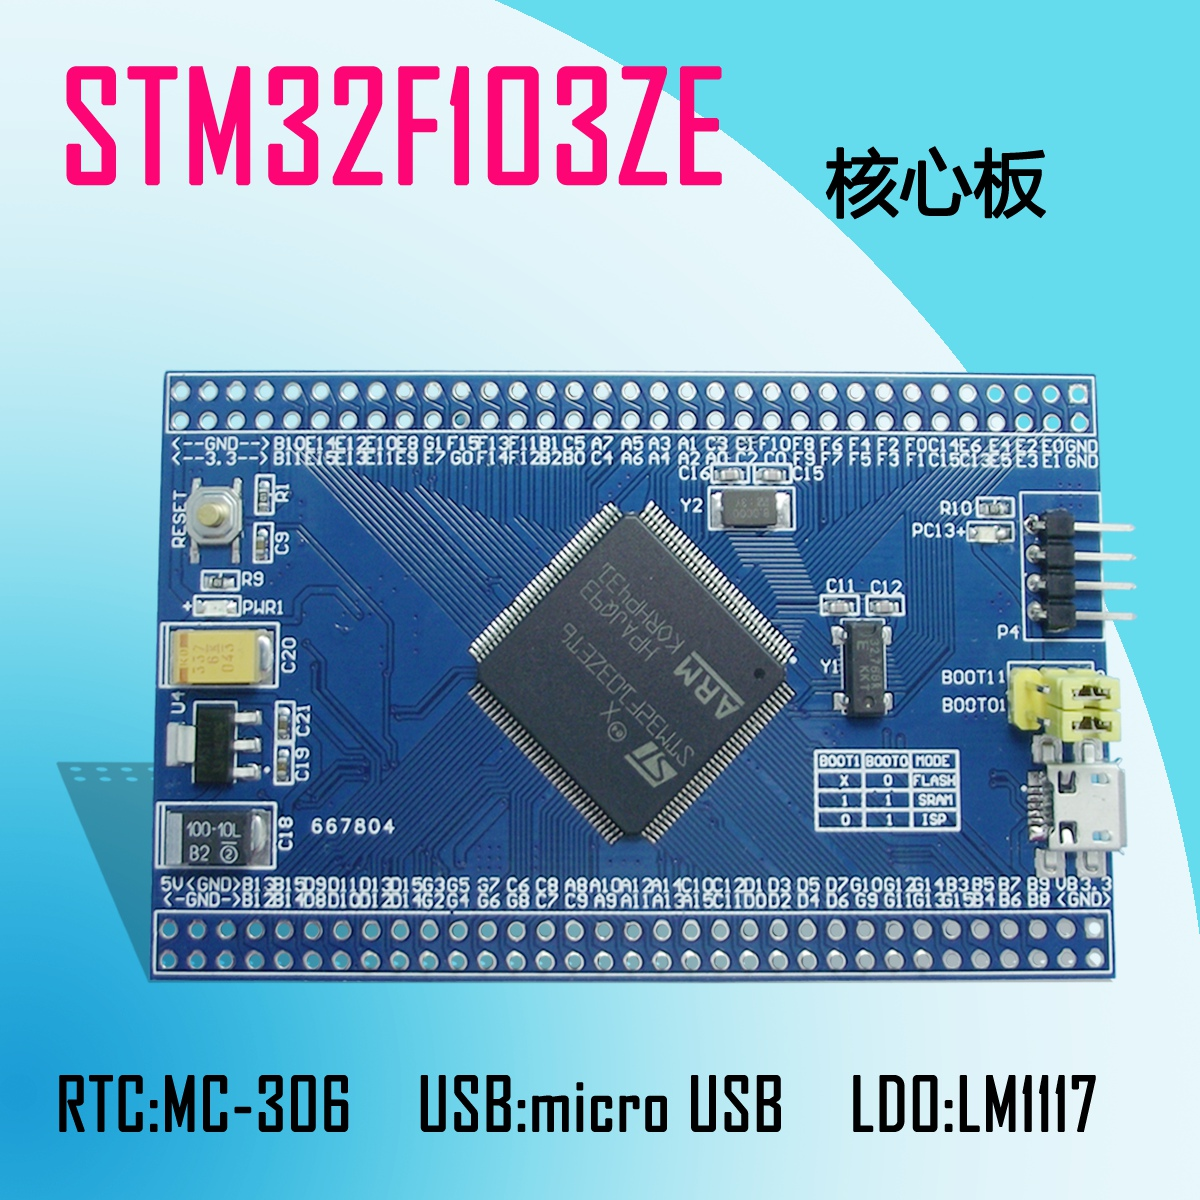 STM32F103ZET6 core board, minimum system board, STM32 ARM learning board, cortex-M3 stm32f103c8t6 core board learning board assessment board entry artifact stm32